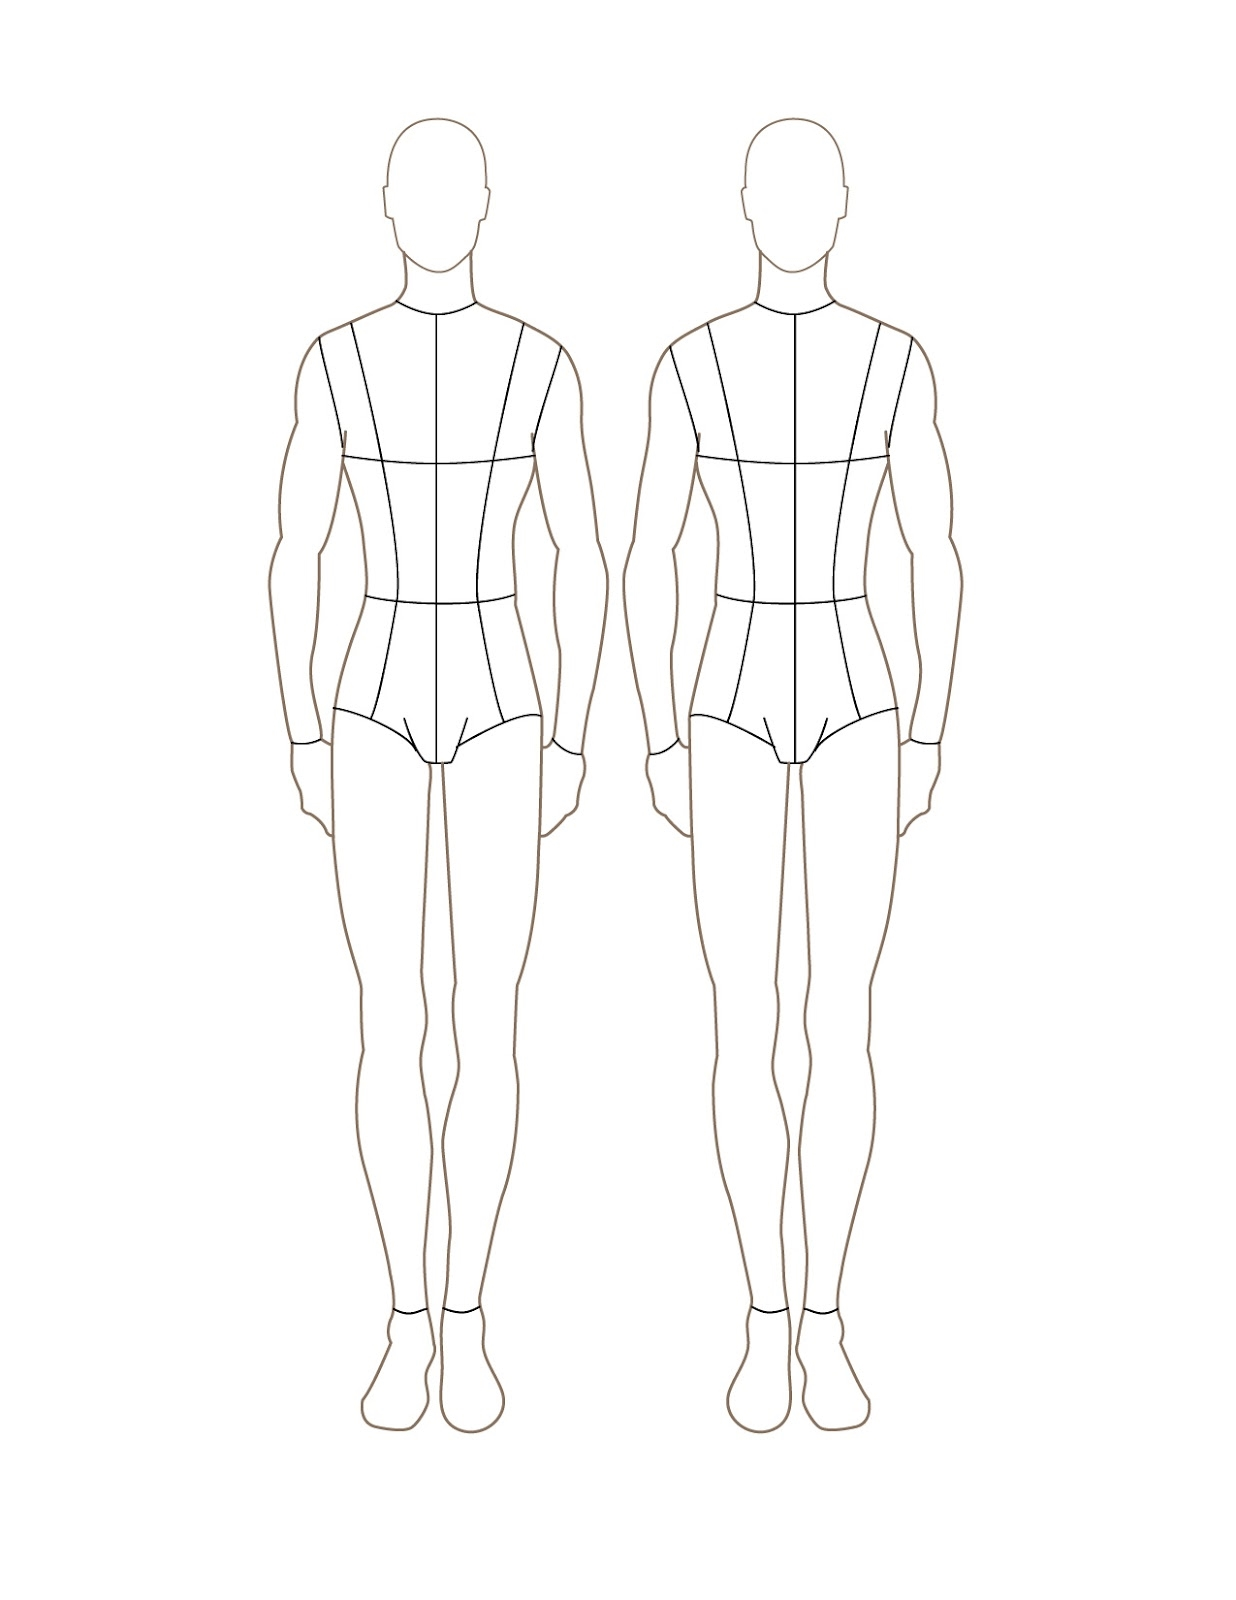 It's just a picture of Clean Fashion Drawing Templates